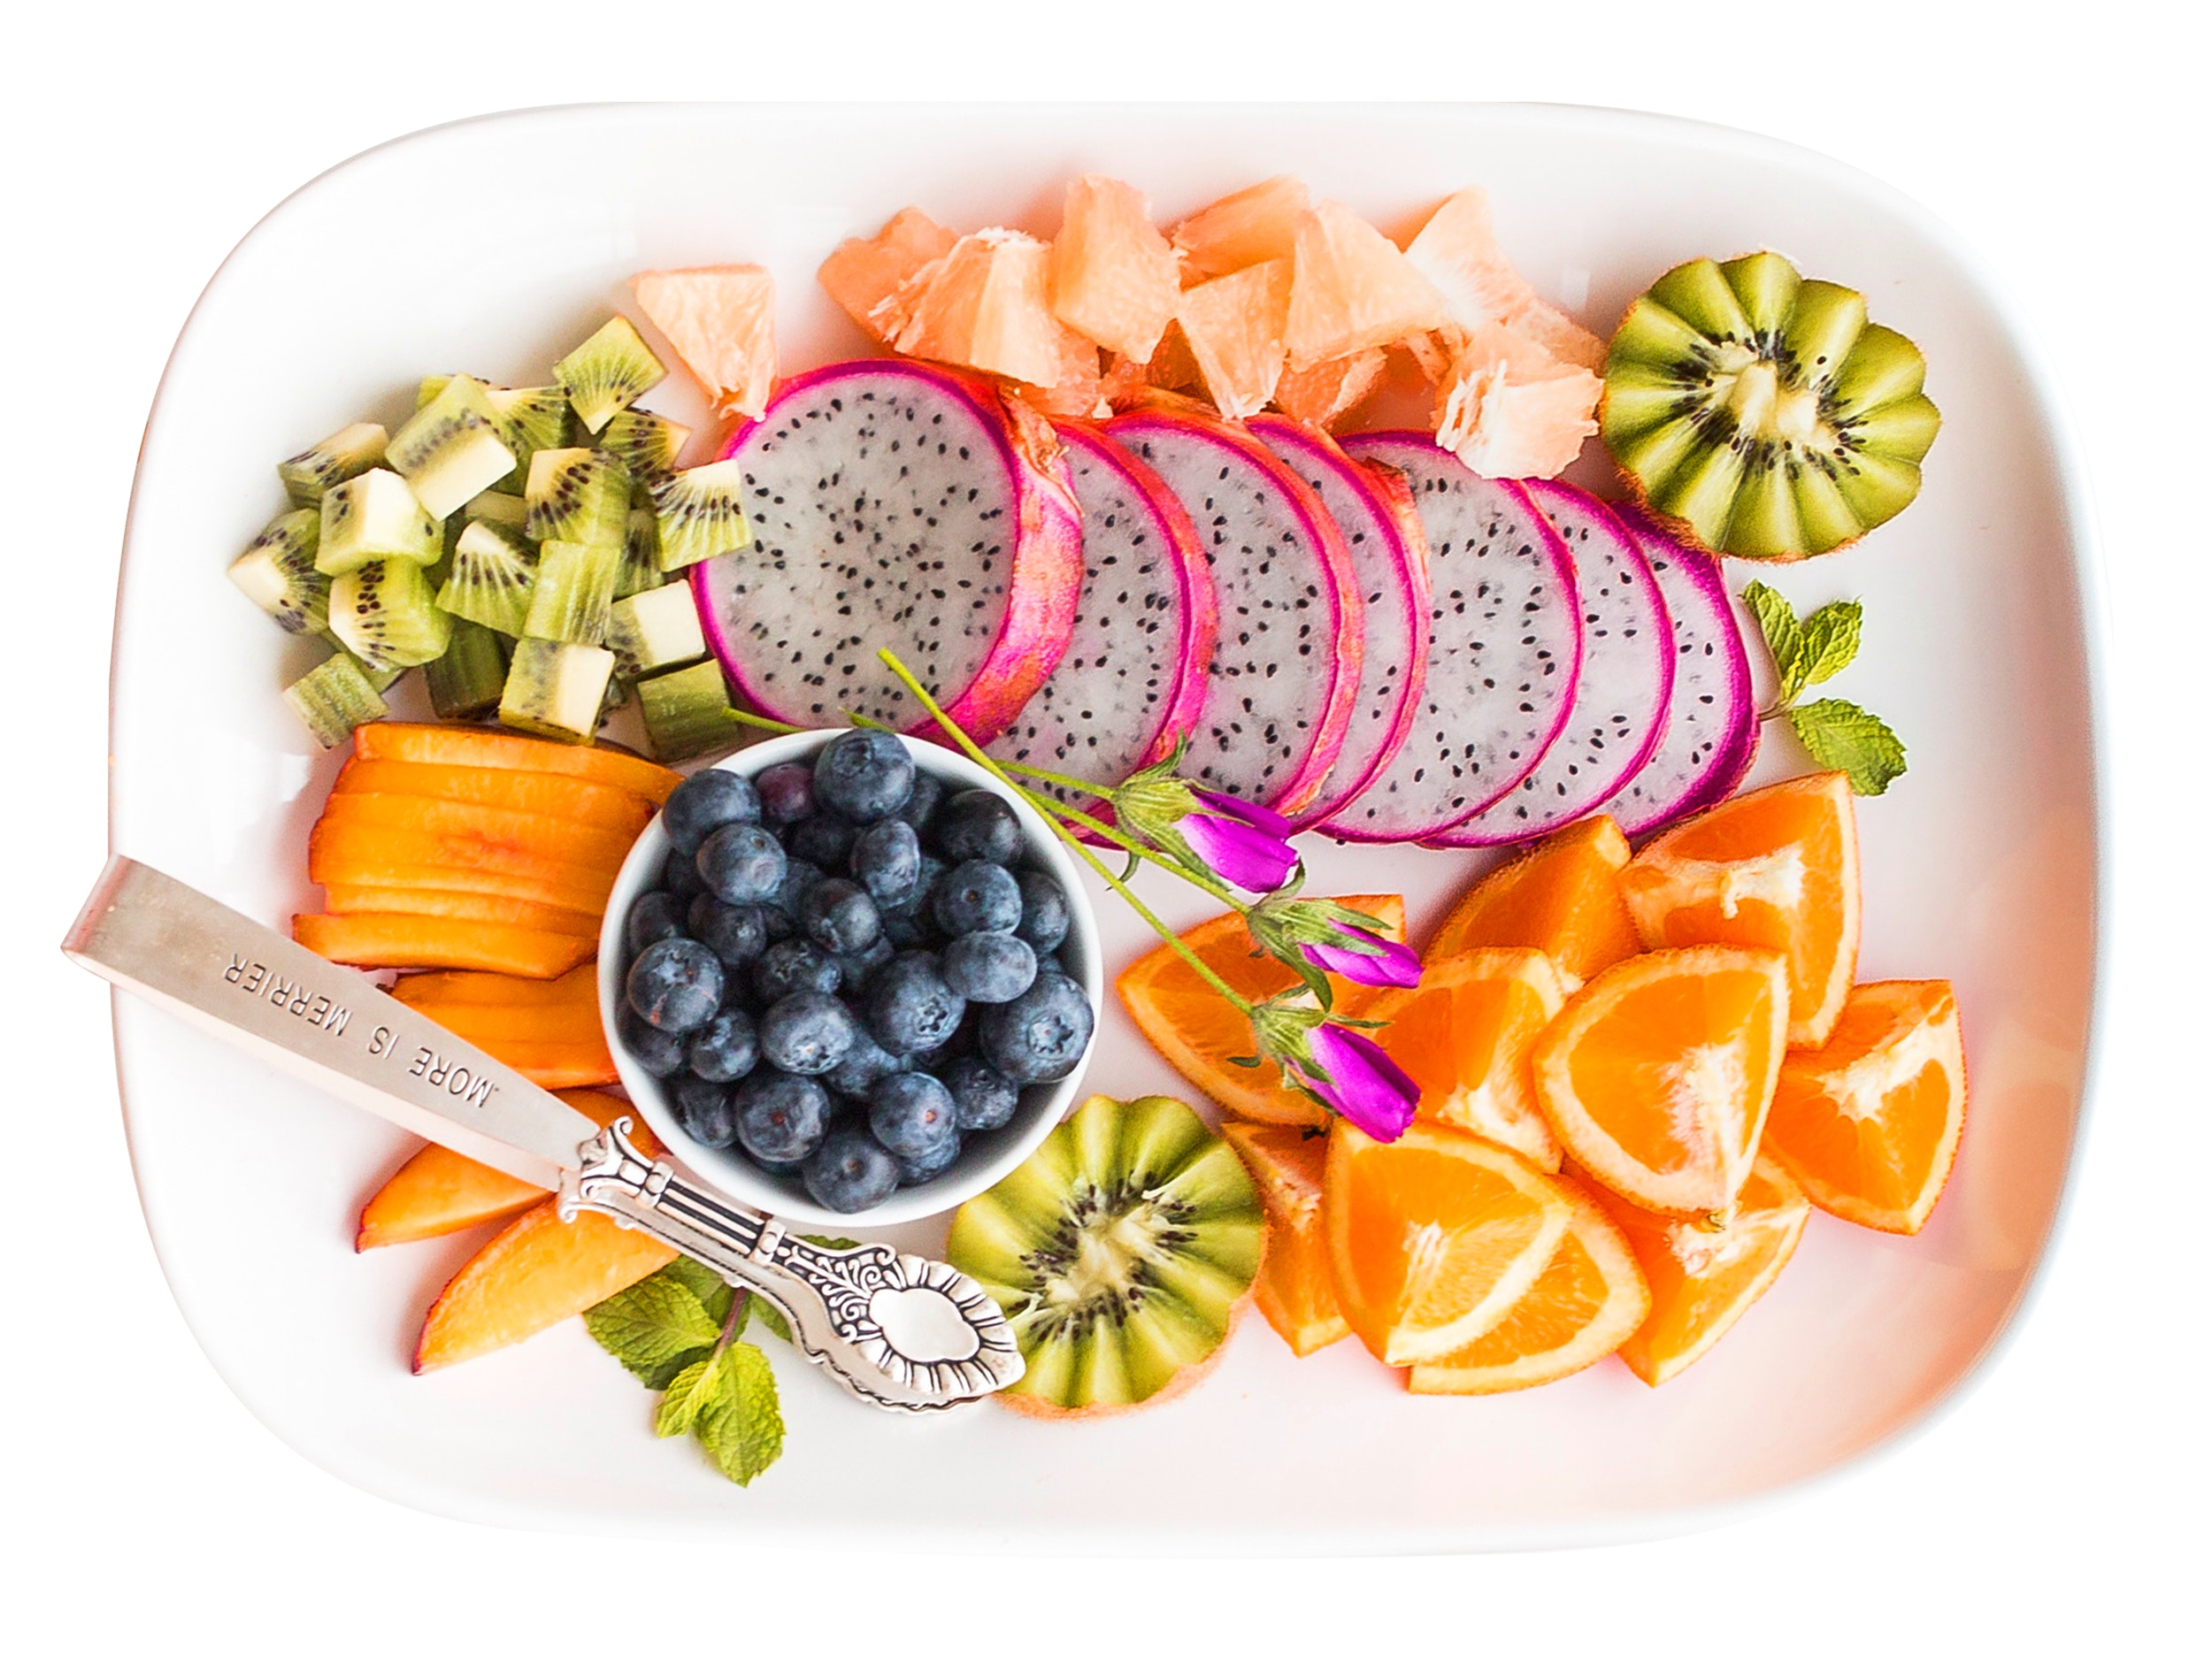 VISIT MY BLOG FOR FREE nutrition advice - There's some juicy stuff there, don't miss out...